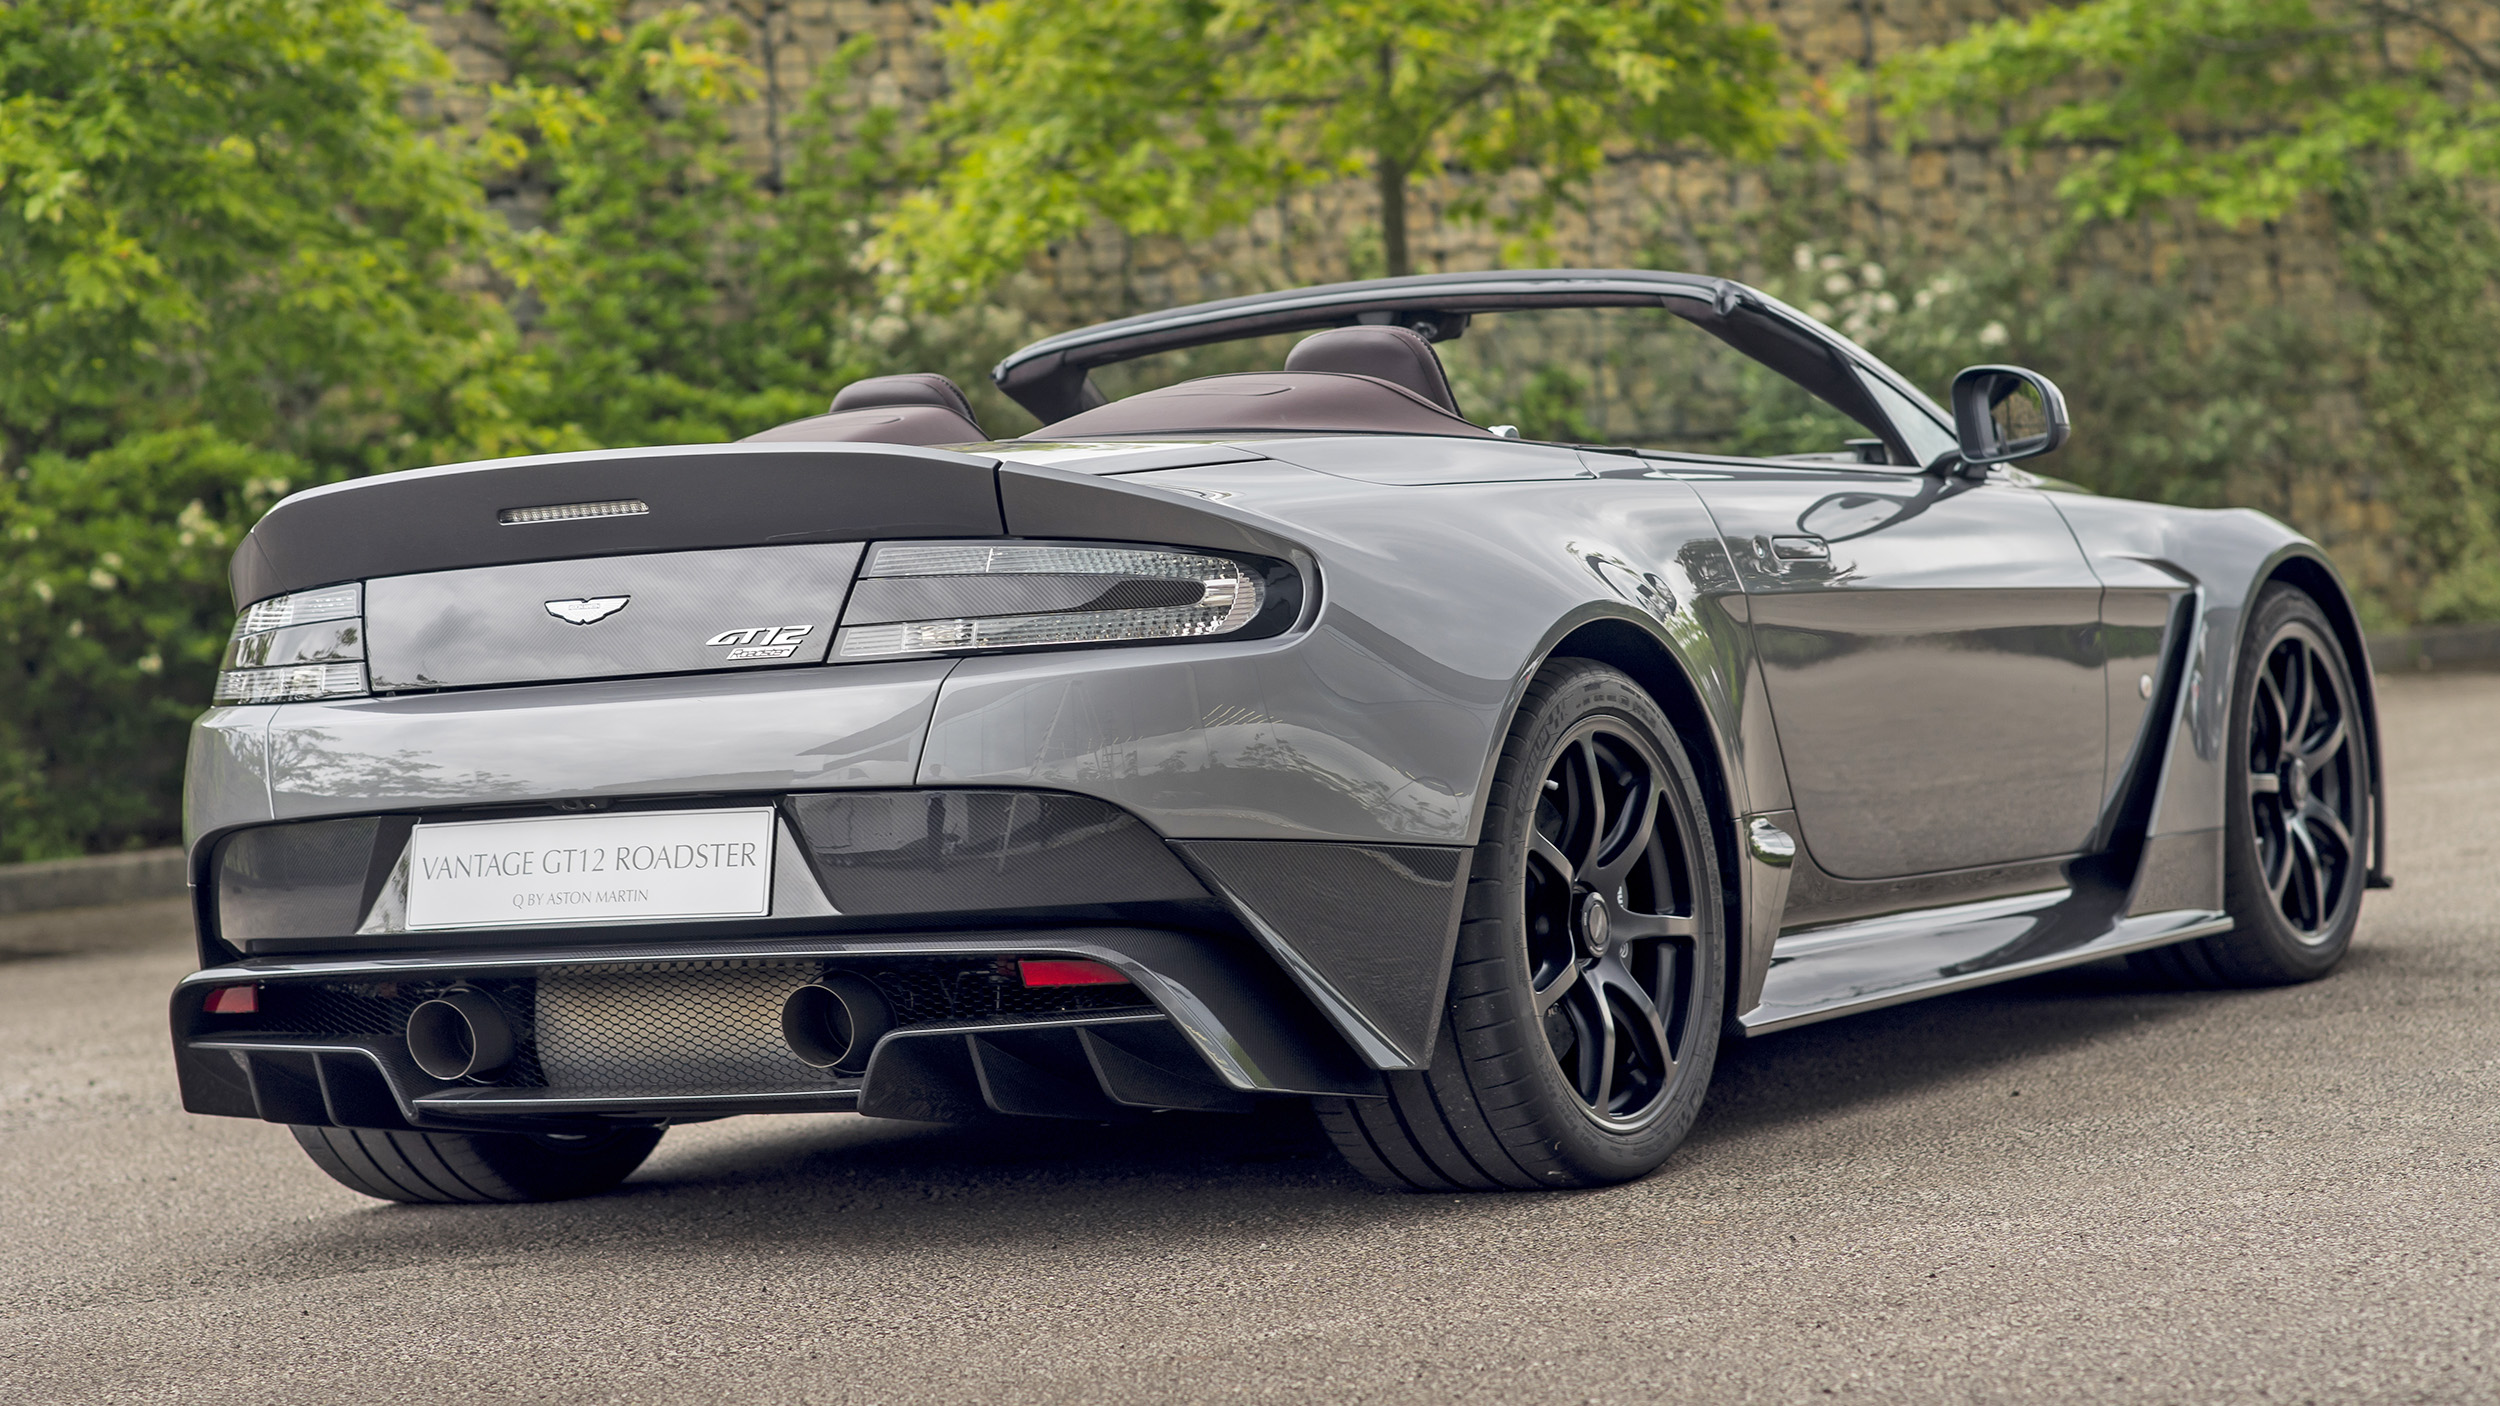 This one-off Aston Vantage GT12 Roadster will be LOUD | Top Gear